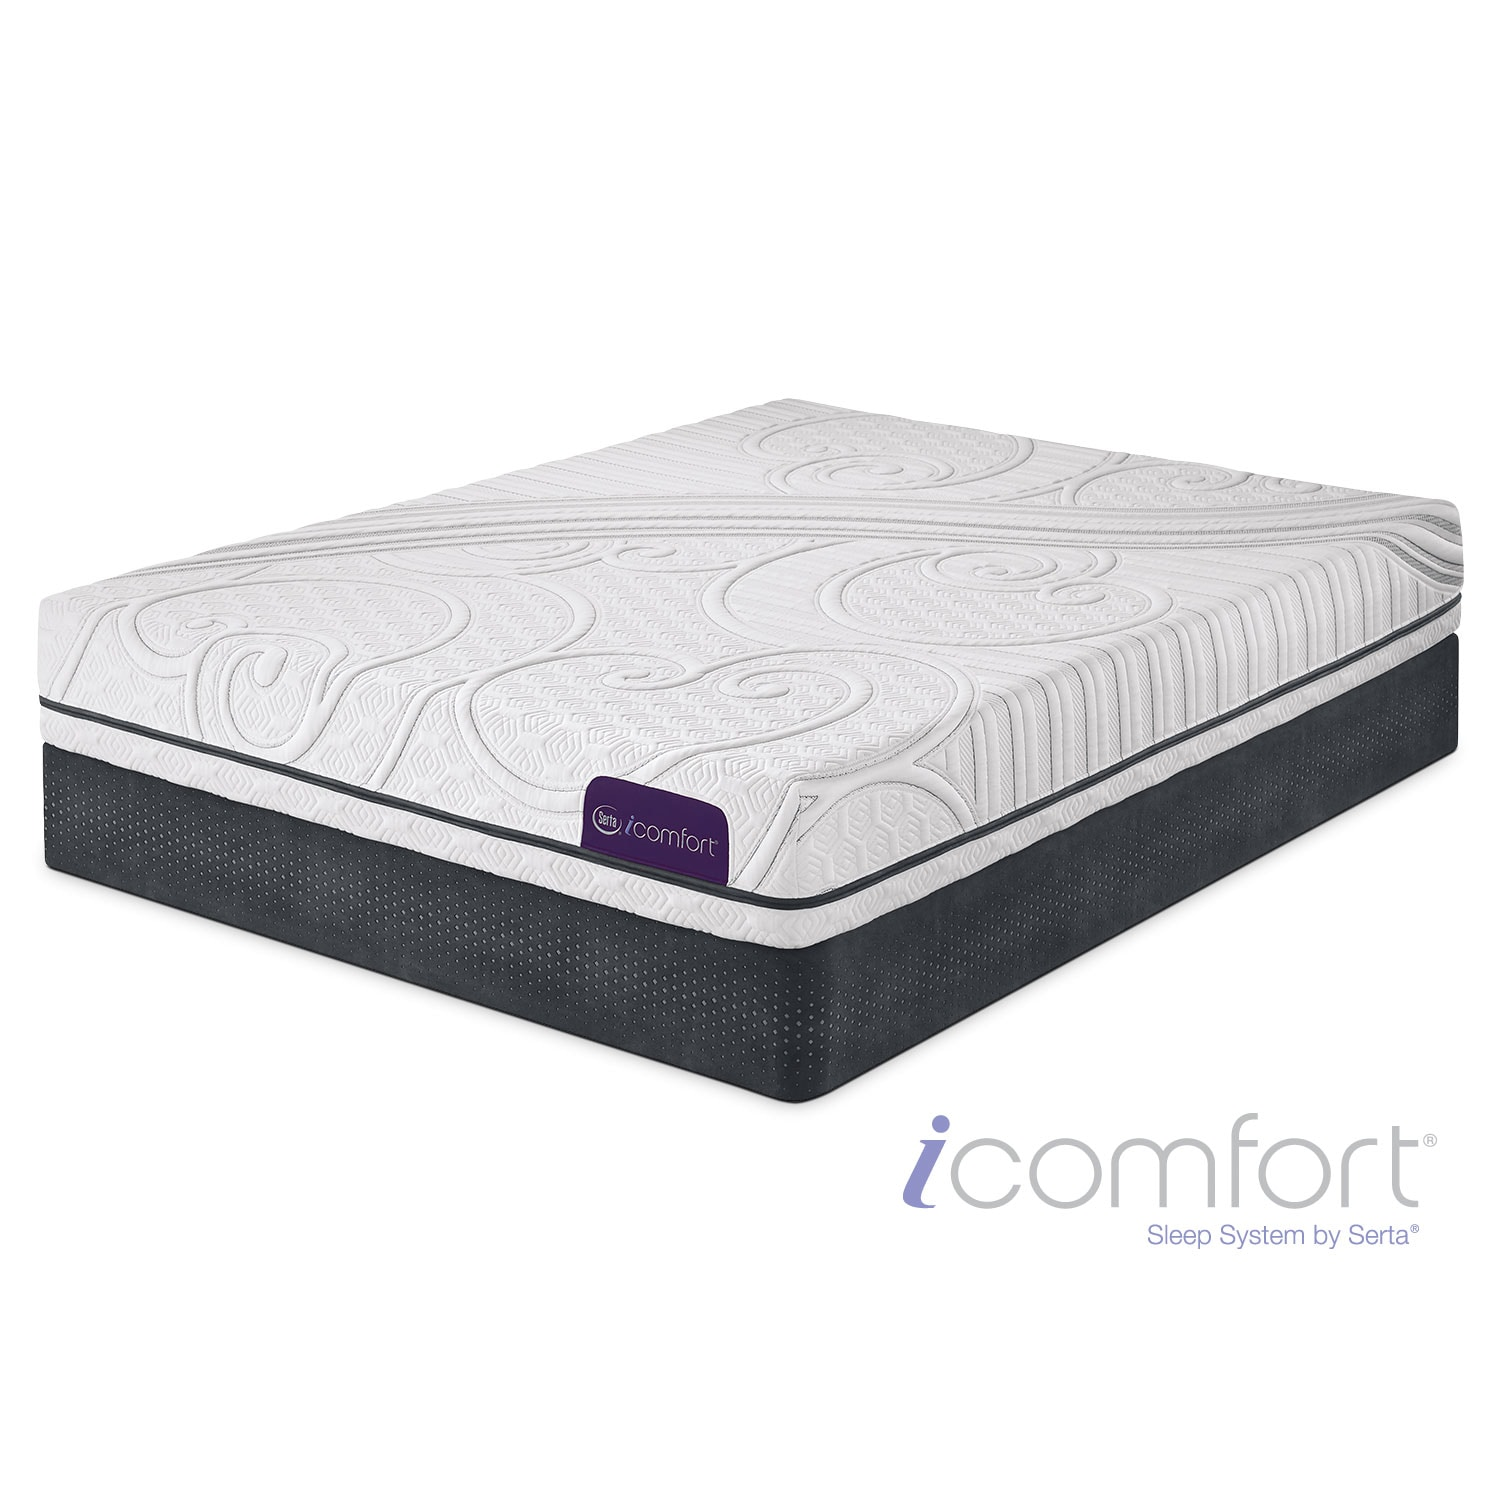 Mattresses and Bedding - Foresight Firm Twin Mattress and Foundation Set